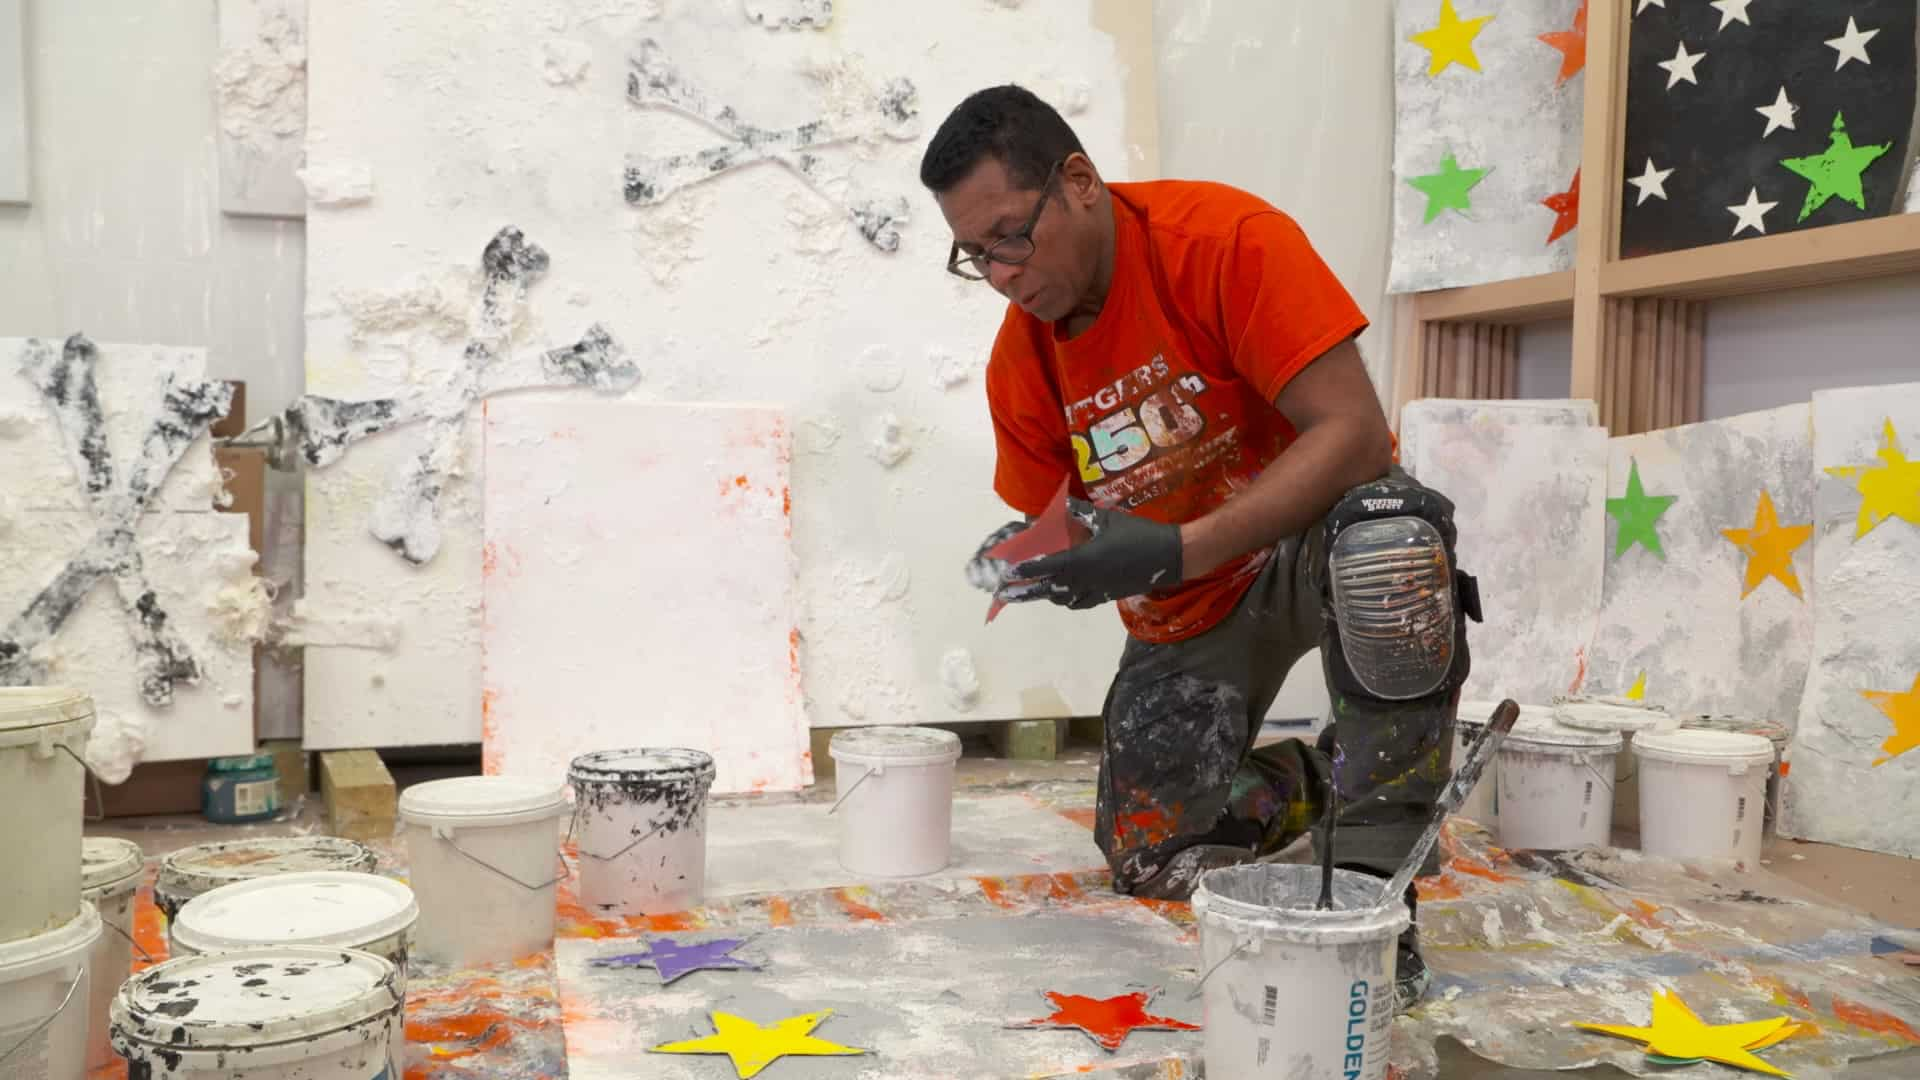 German Pitre working in his Express Newark studio